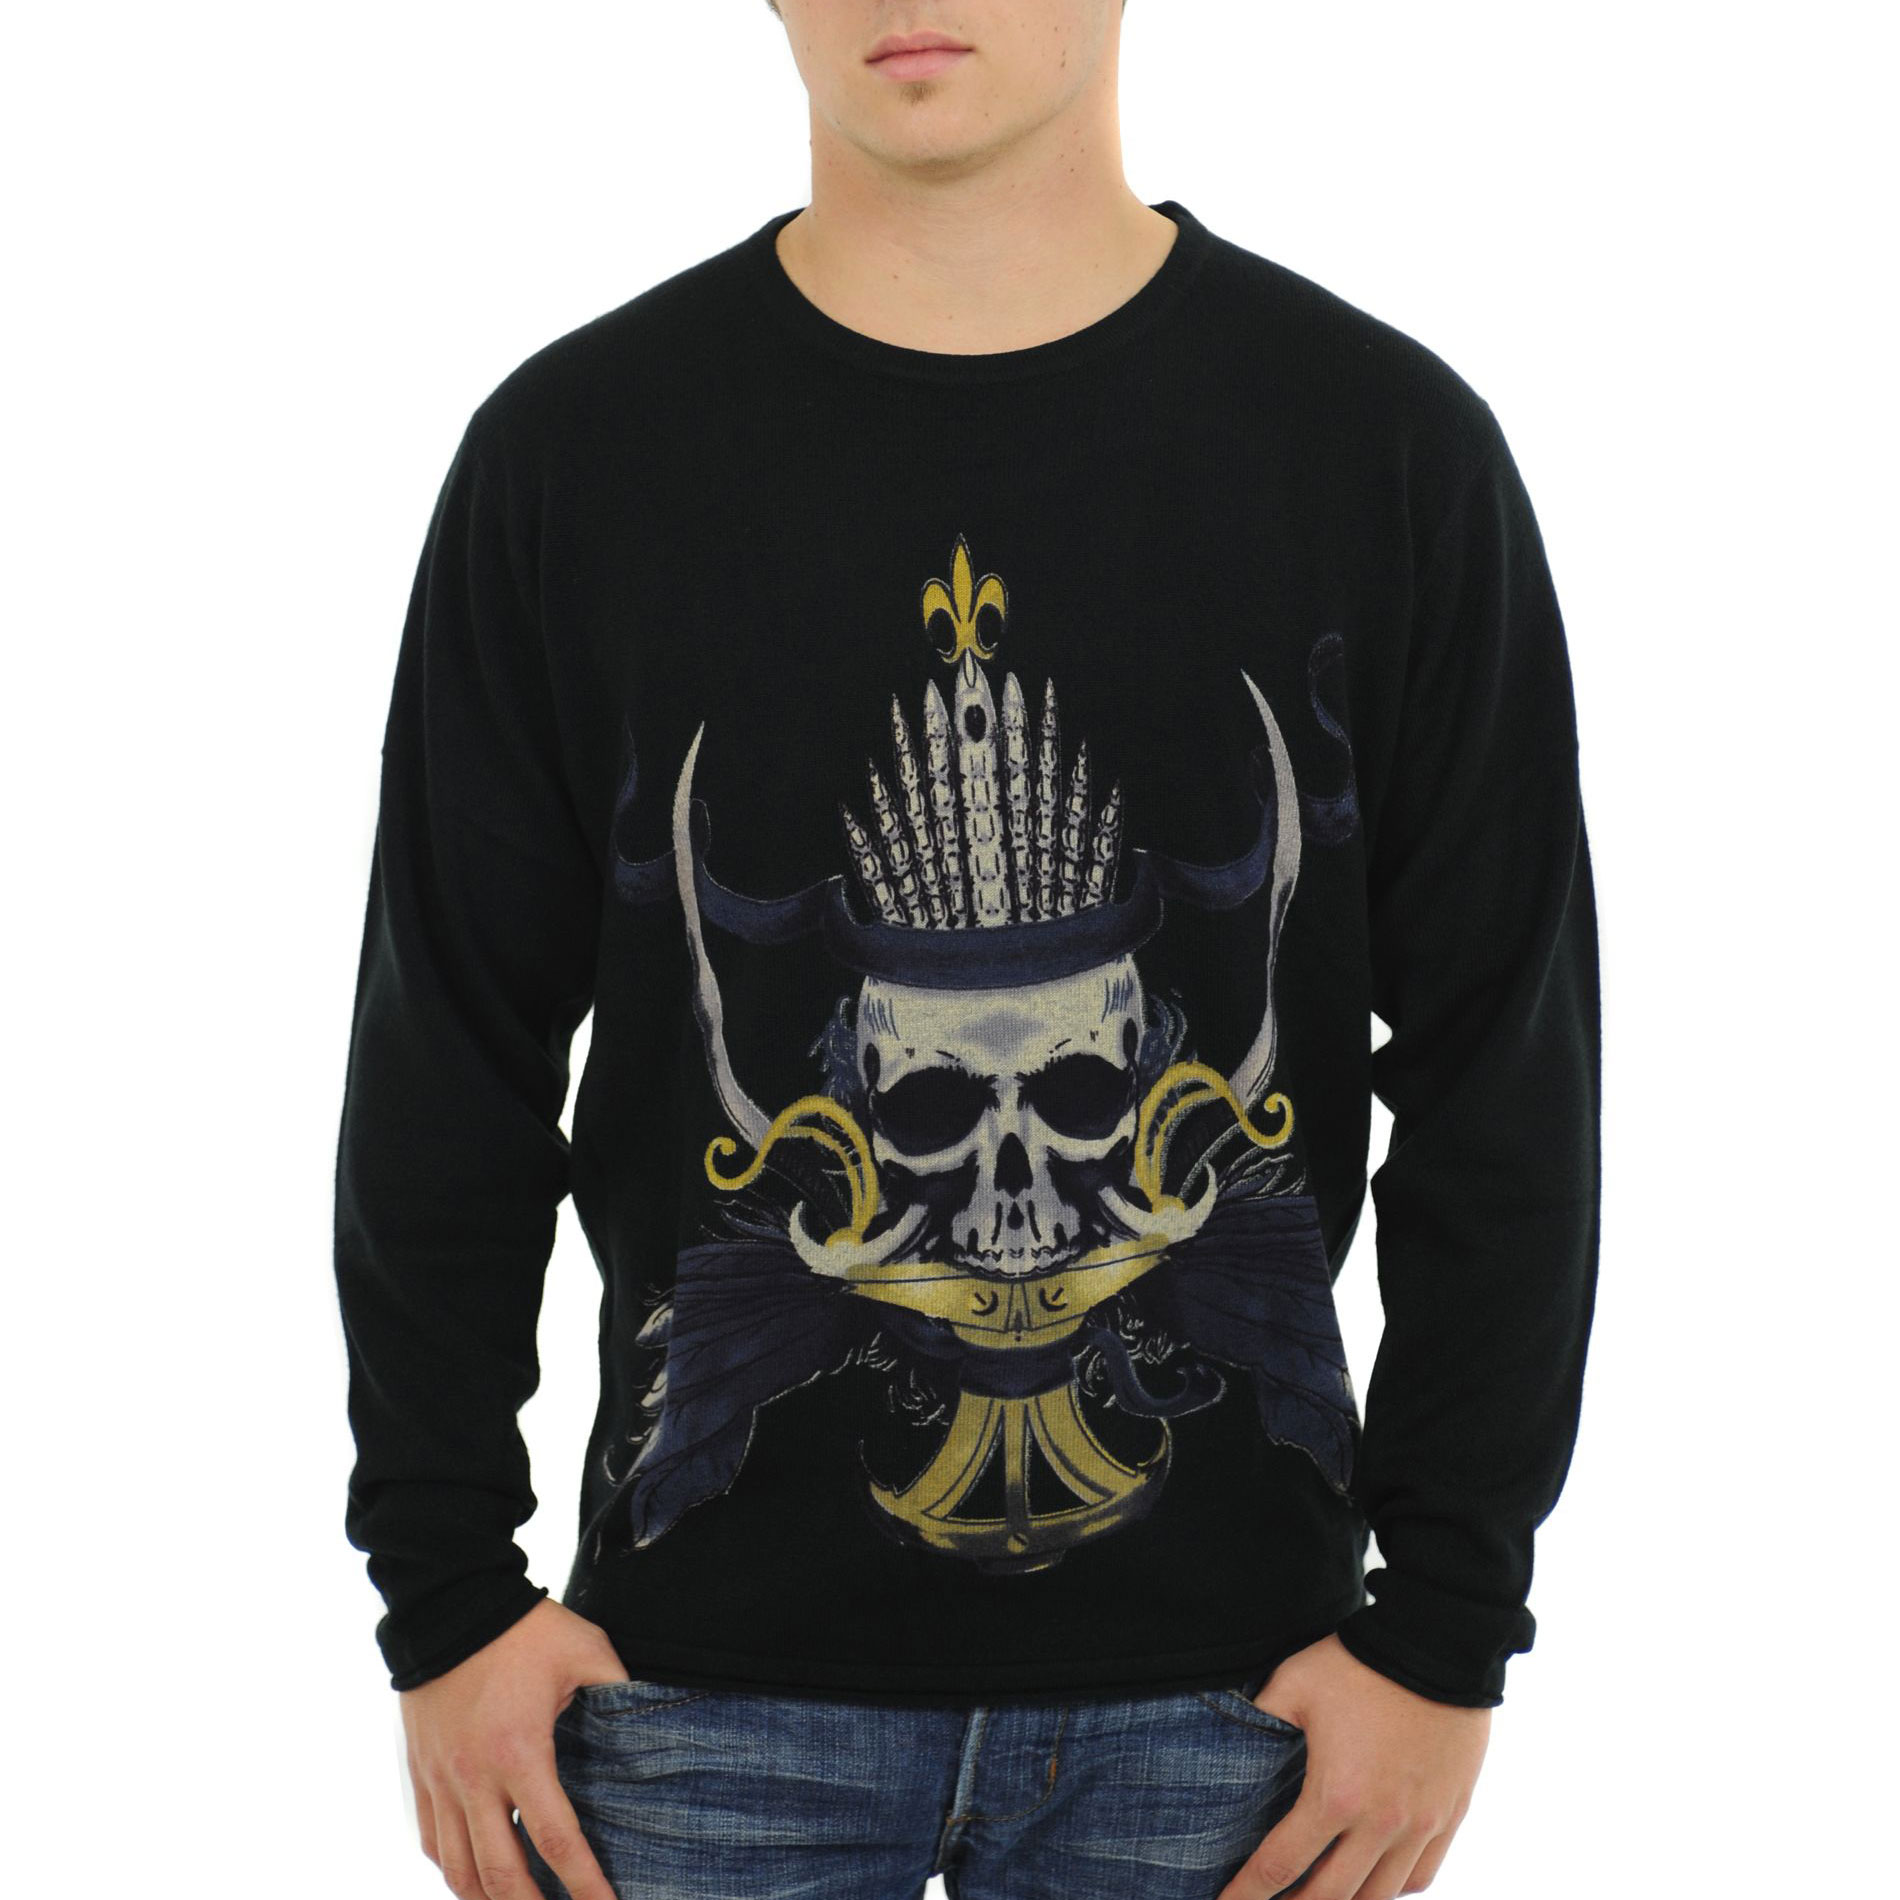 RAW-7 G09H03-CAPTAIN Raw7 Men's 100% Acrylic Crewneck Sweater Captain Design - Black